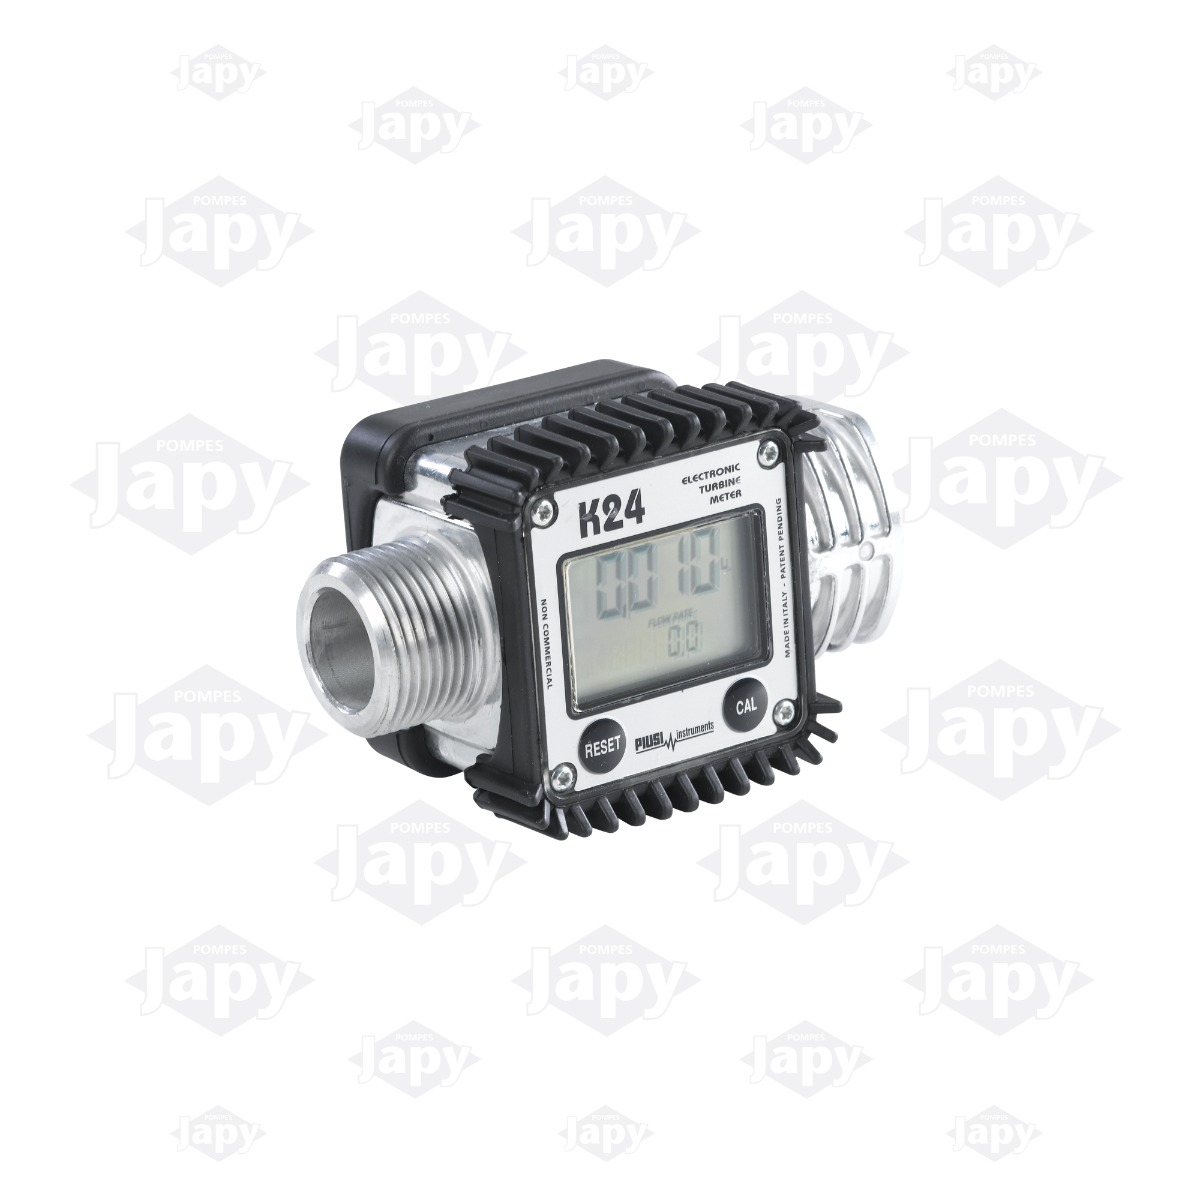 mass air flow meter counter adblue diesel gasoline oil solvent counter flow meters pumpsjapy